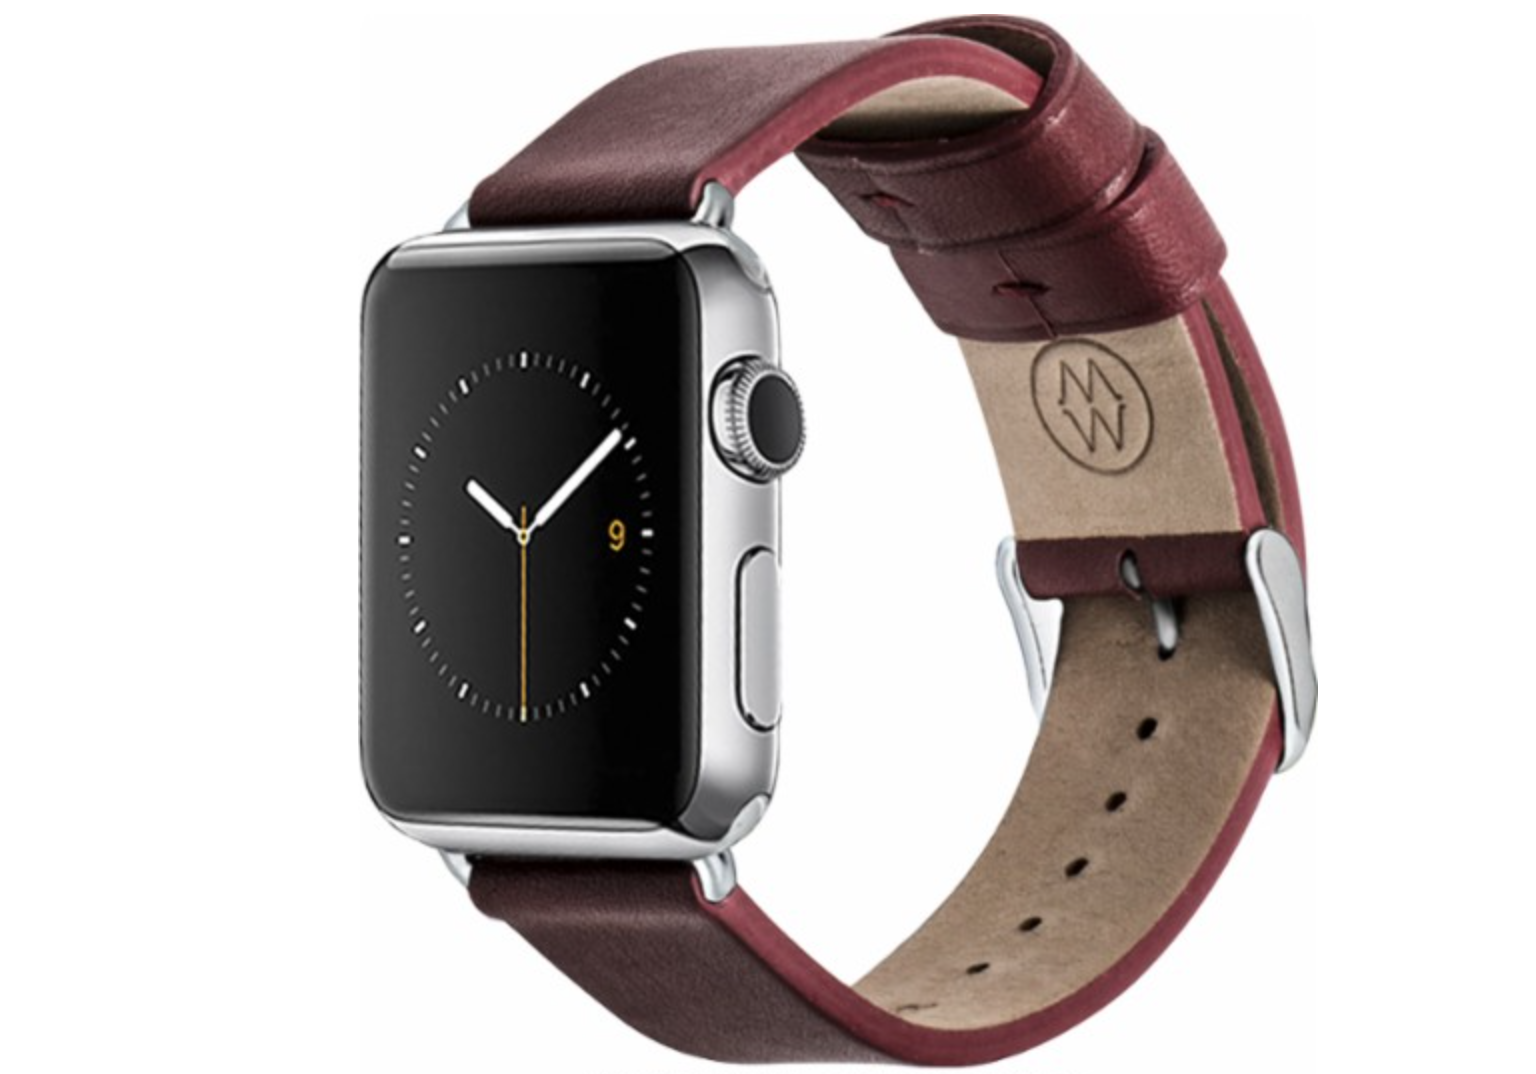 Get a Monowear Apple Watch Band for Just $9.99